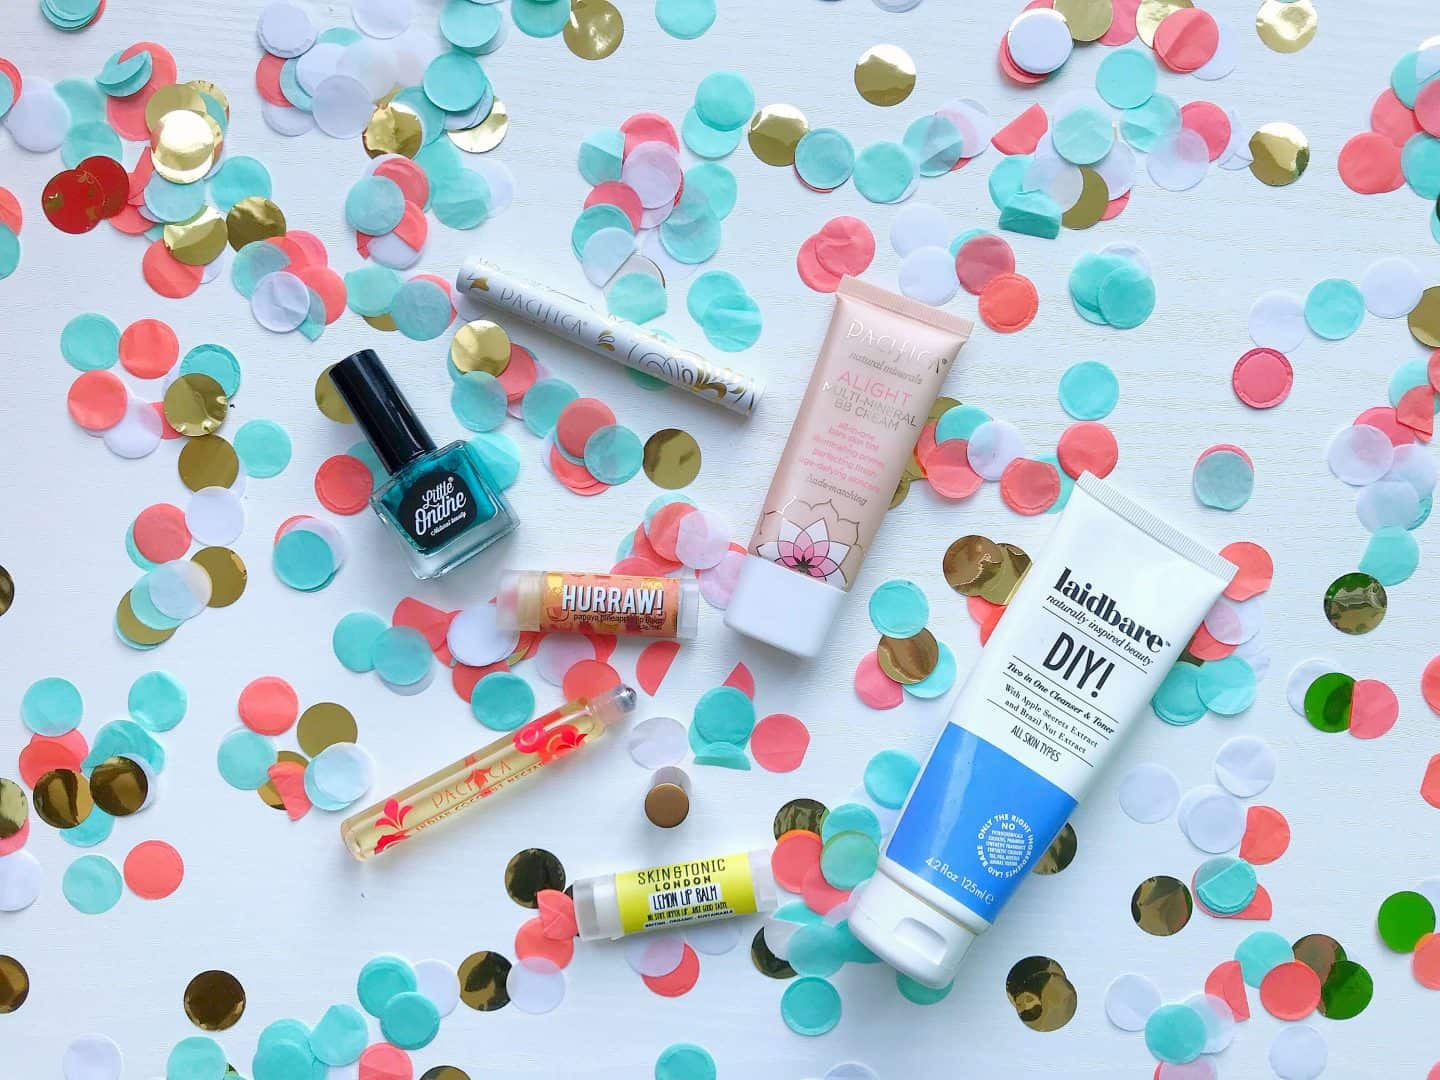 Ethical make-up and skincare make great ethical gifts for kids